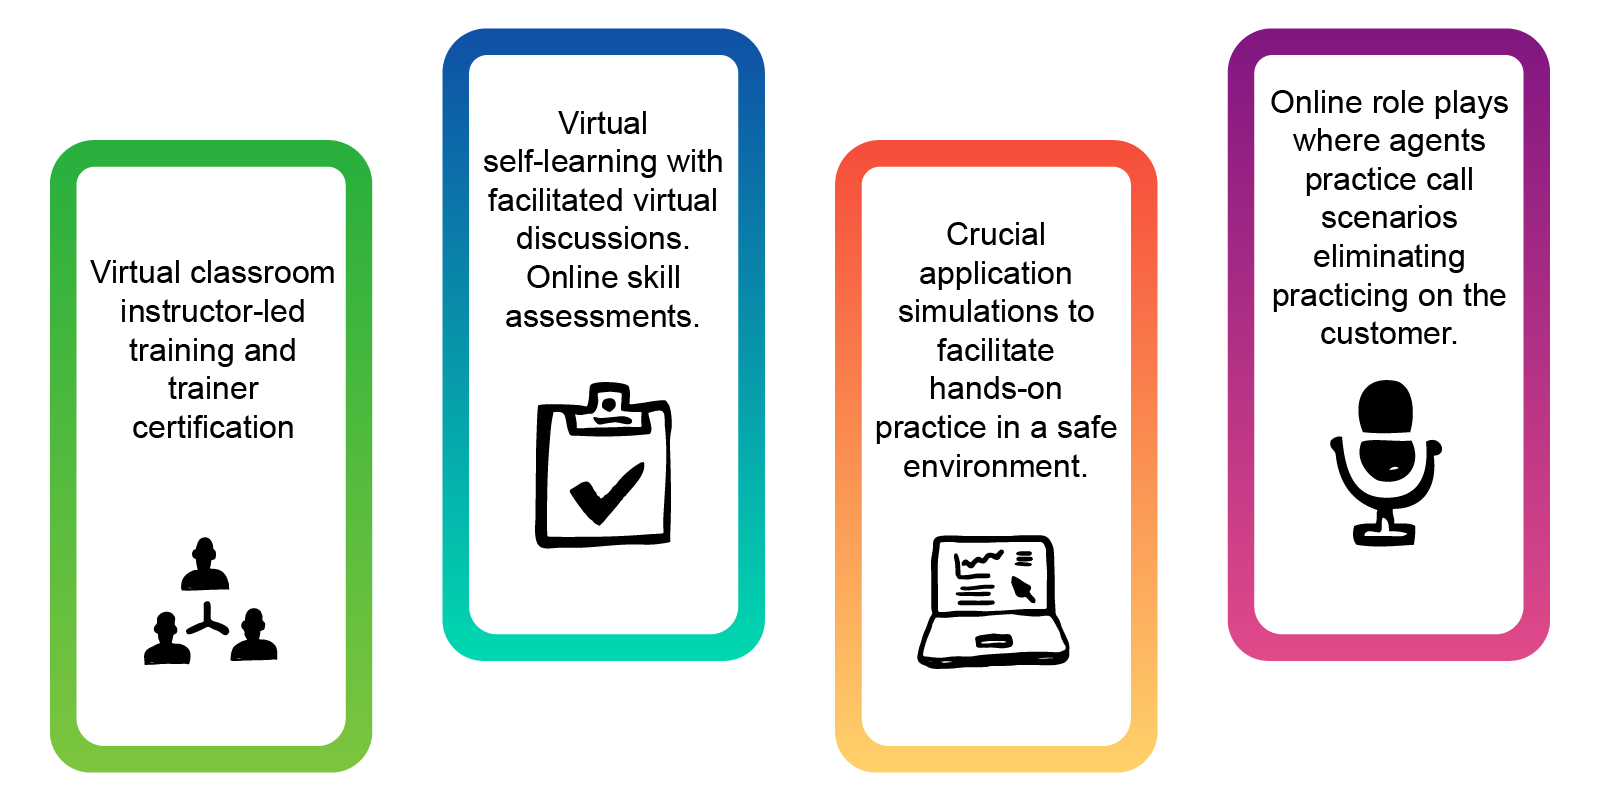 Zelus Virtual Service Offerings: Virtual classroom instructor-led training Virtual self-learning with facilitated discussions Crucial application simulations for hands-on practice Online role plays